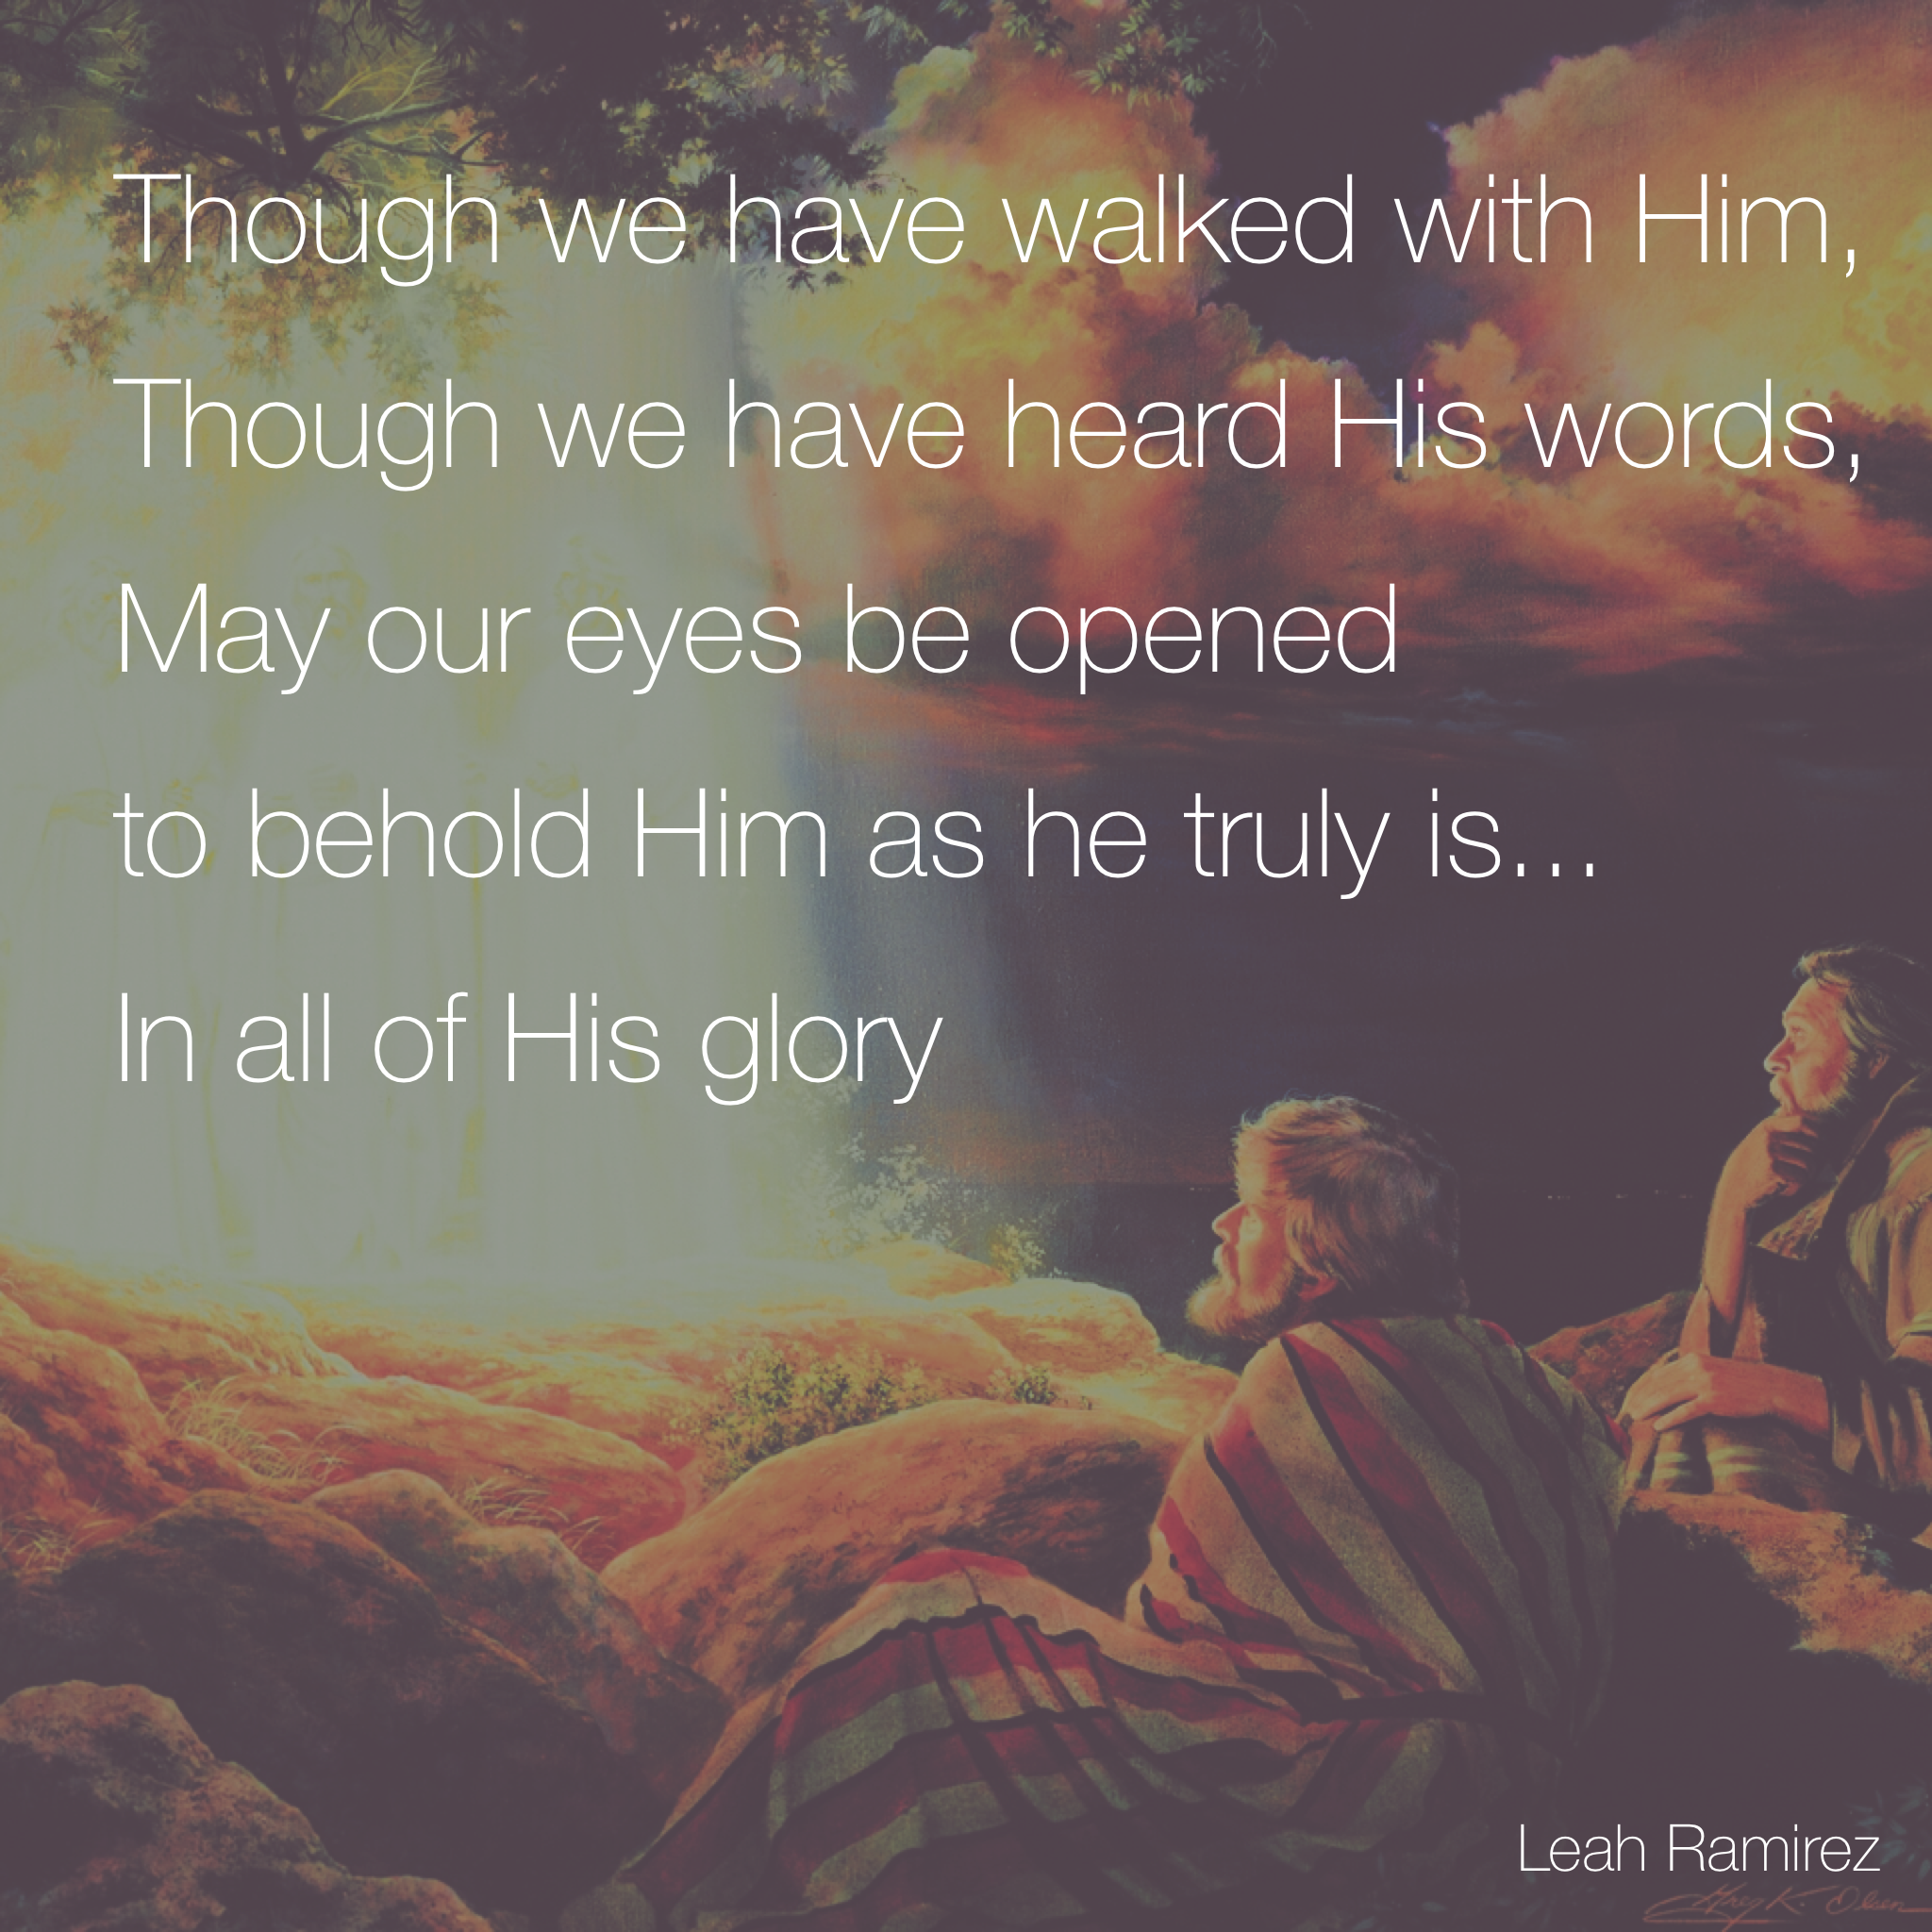 HE WAS TRANSFIGURED BEFORE THEM